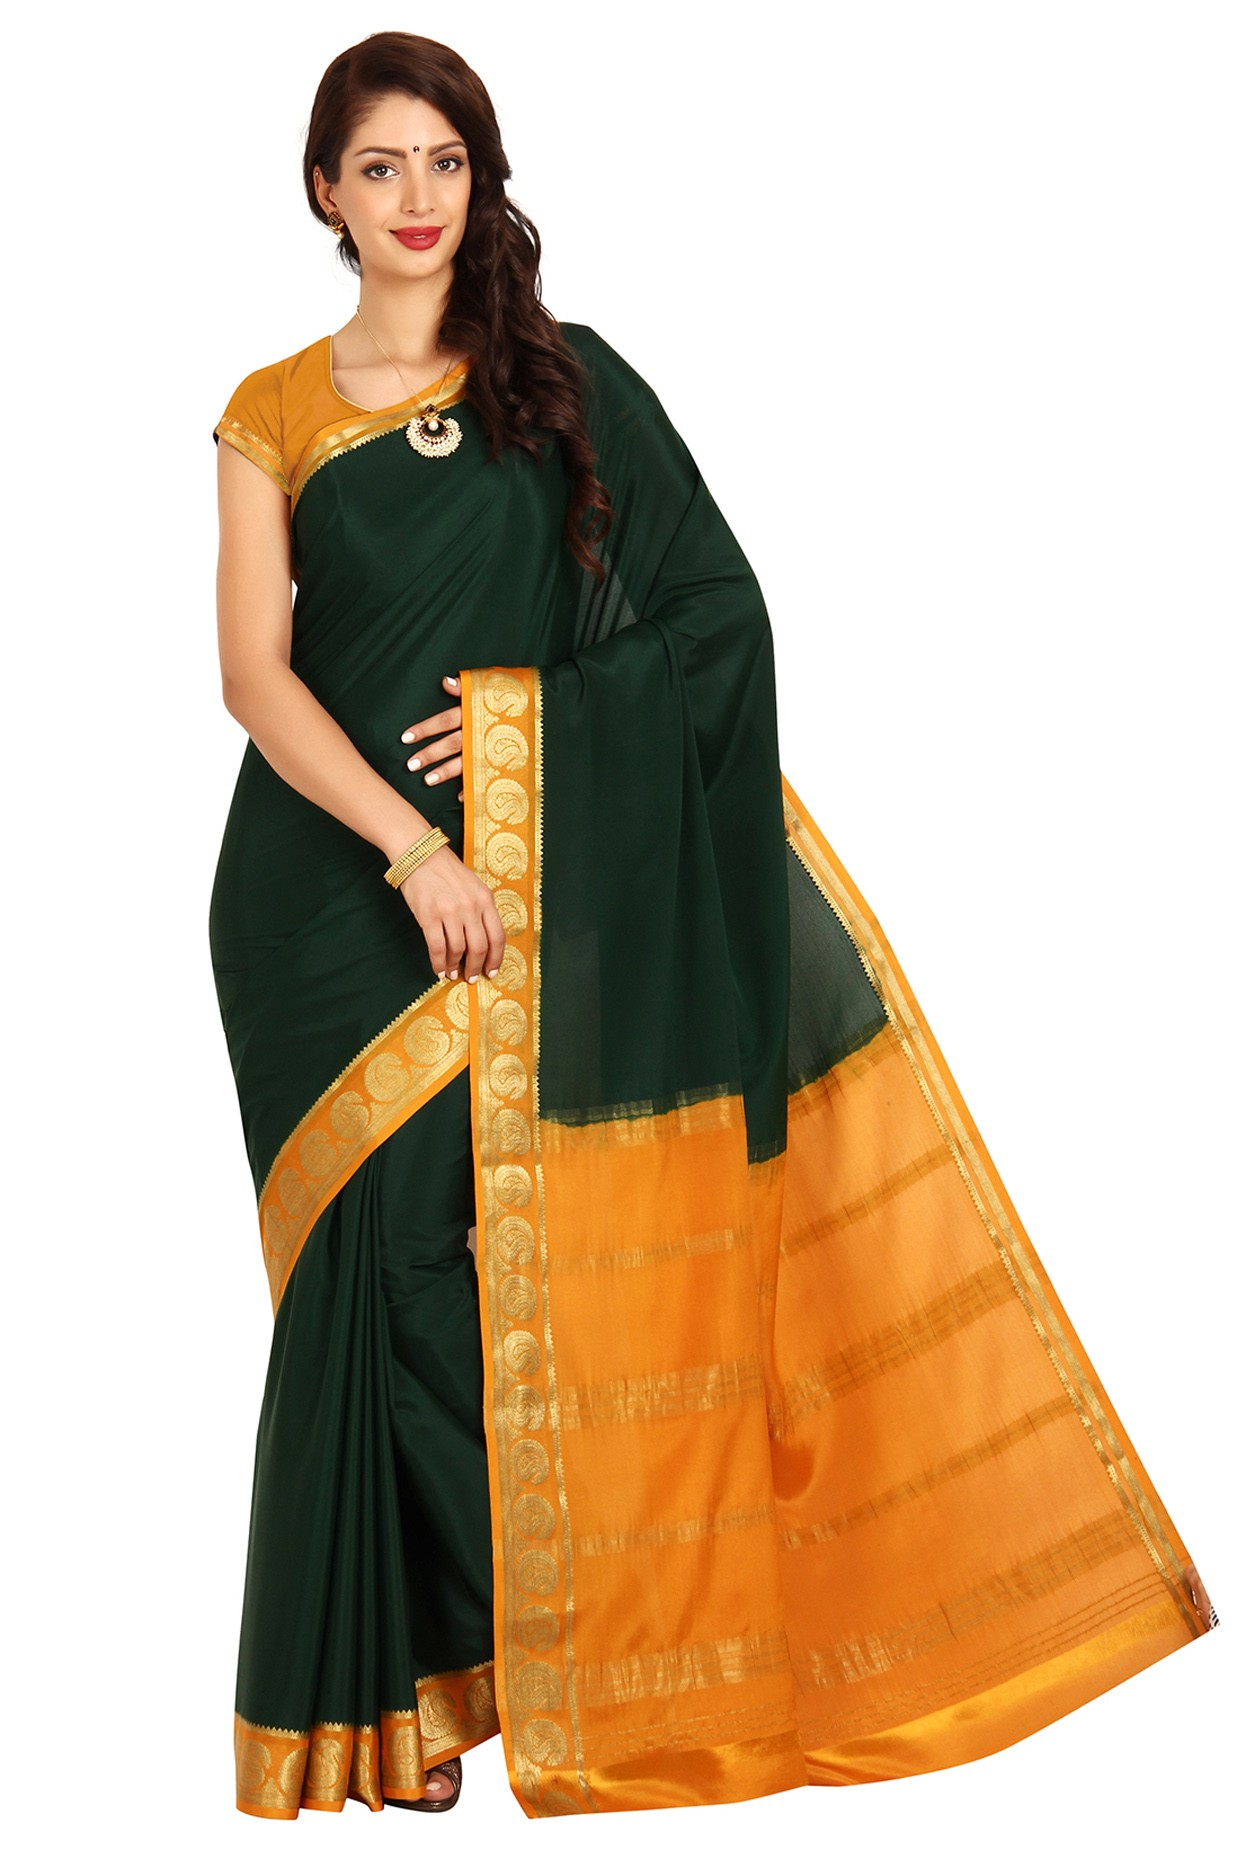 68917bbee 100% Pure Crepe Mysore Traditional Silk Saree KC2107 BOTTLEGREEN MUSTARD - Mysore  Silk Sarees - Sarees